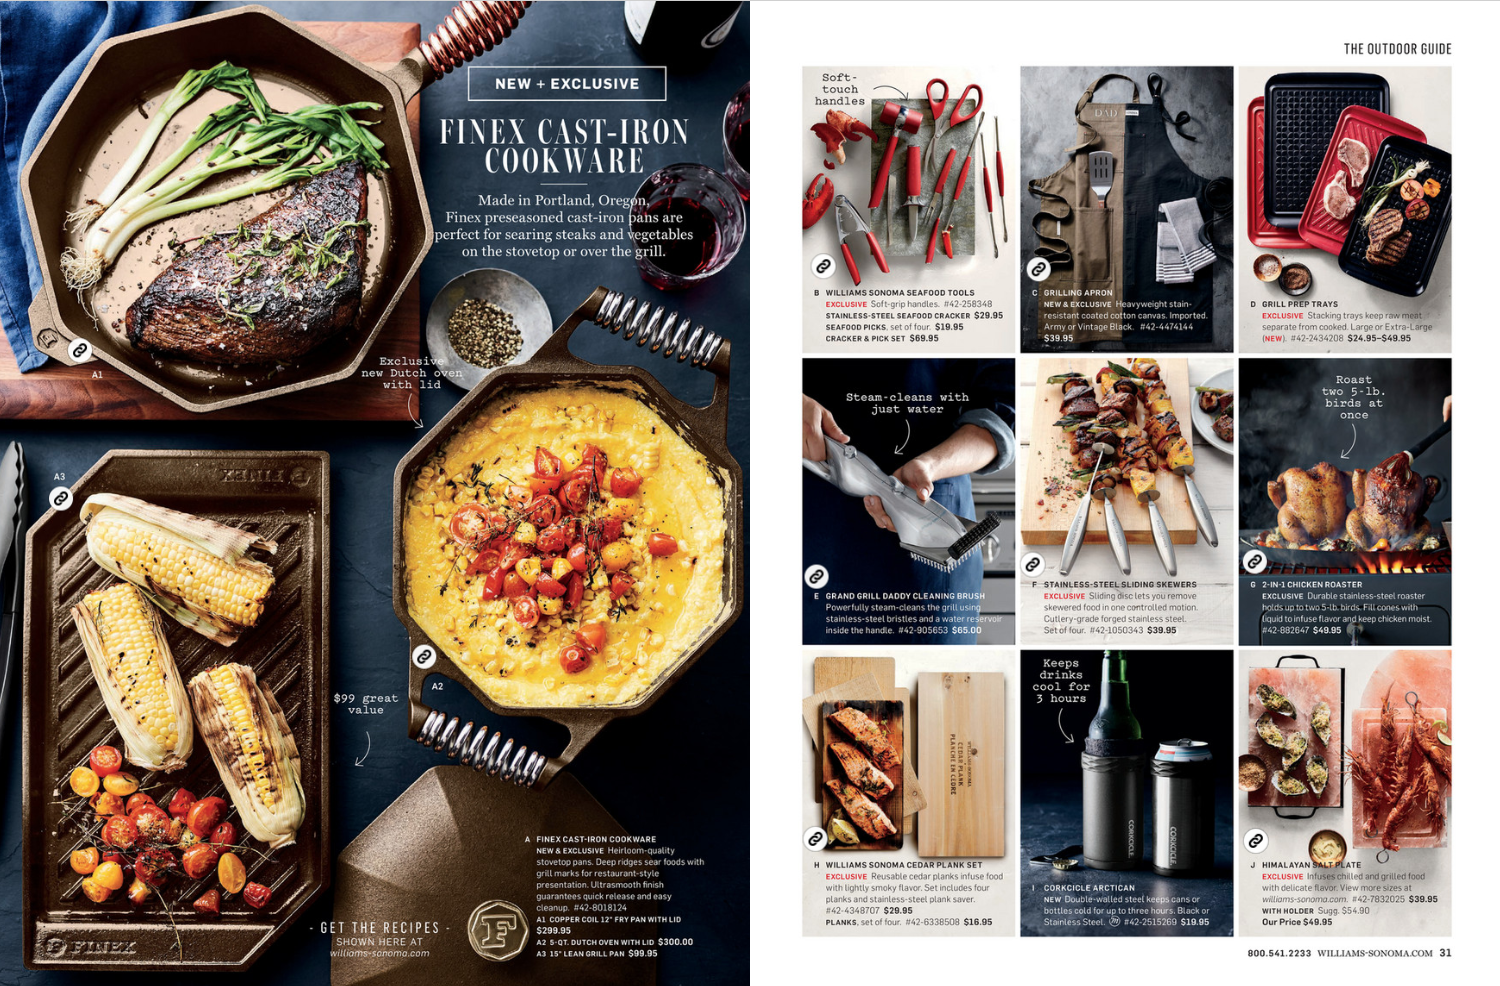 Photography: Anna Williams, Prop Styling: Marcus Hay for SMH, Inc, Food Styling by George Dolese